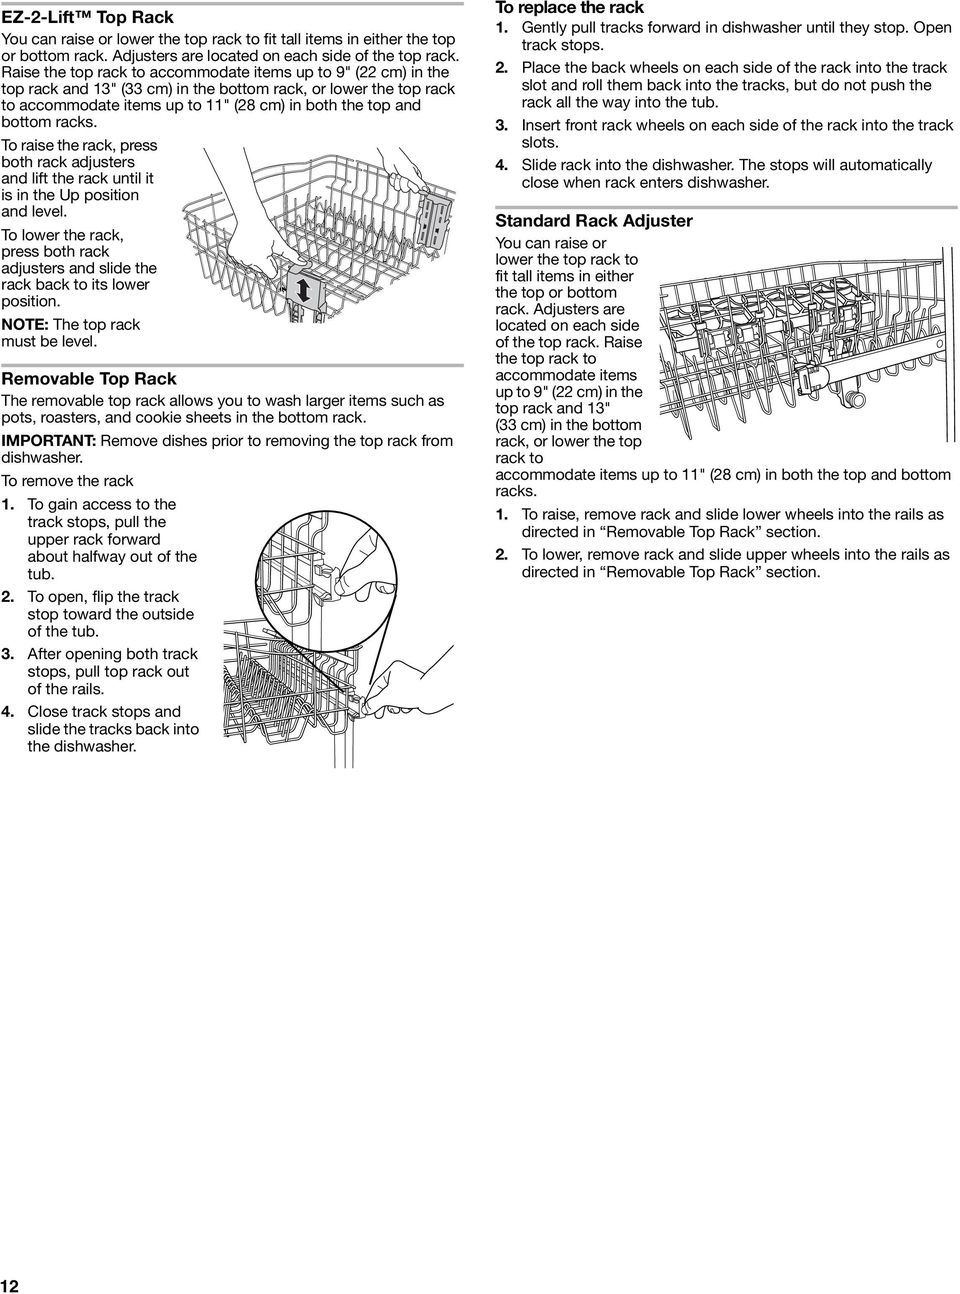 racks. To raise the rack, press both rack adjusters and lift the rack until it is in the Up position and level.